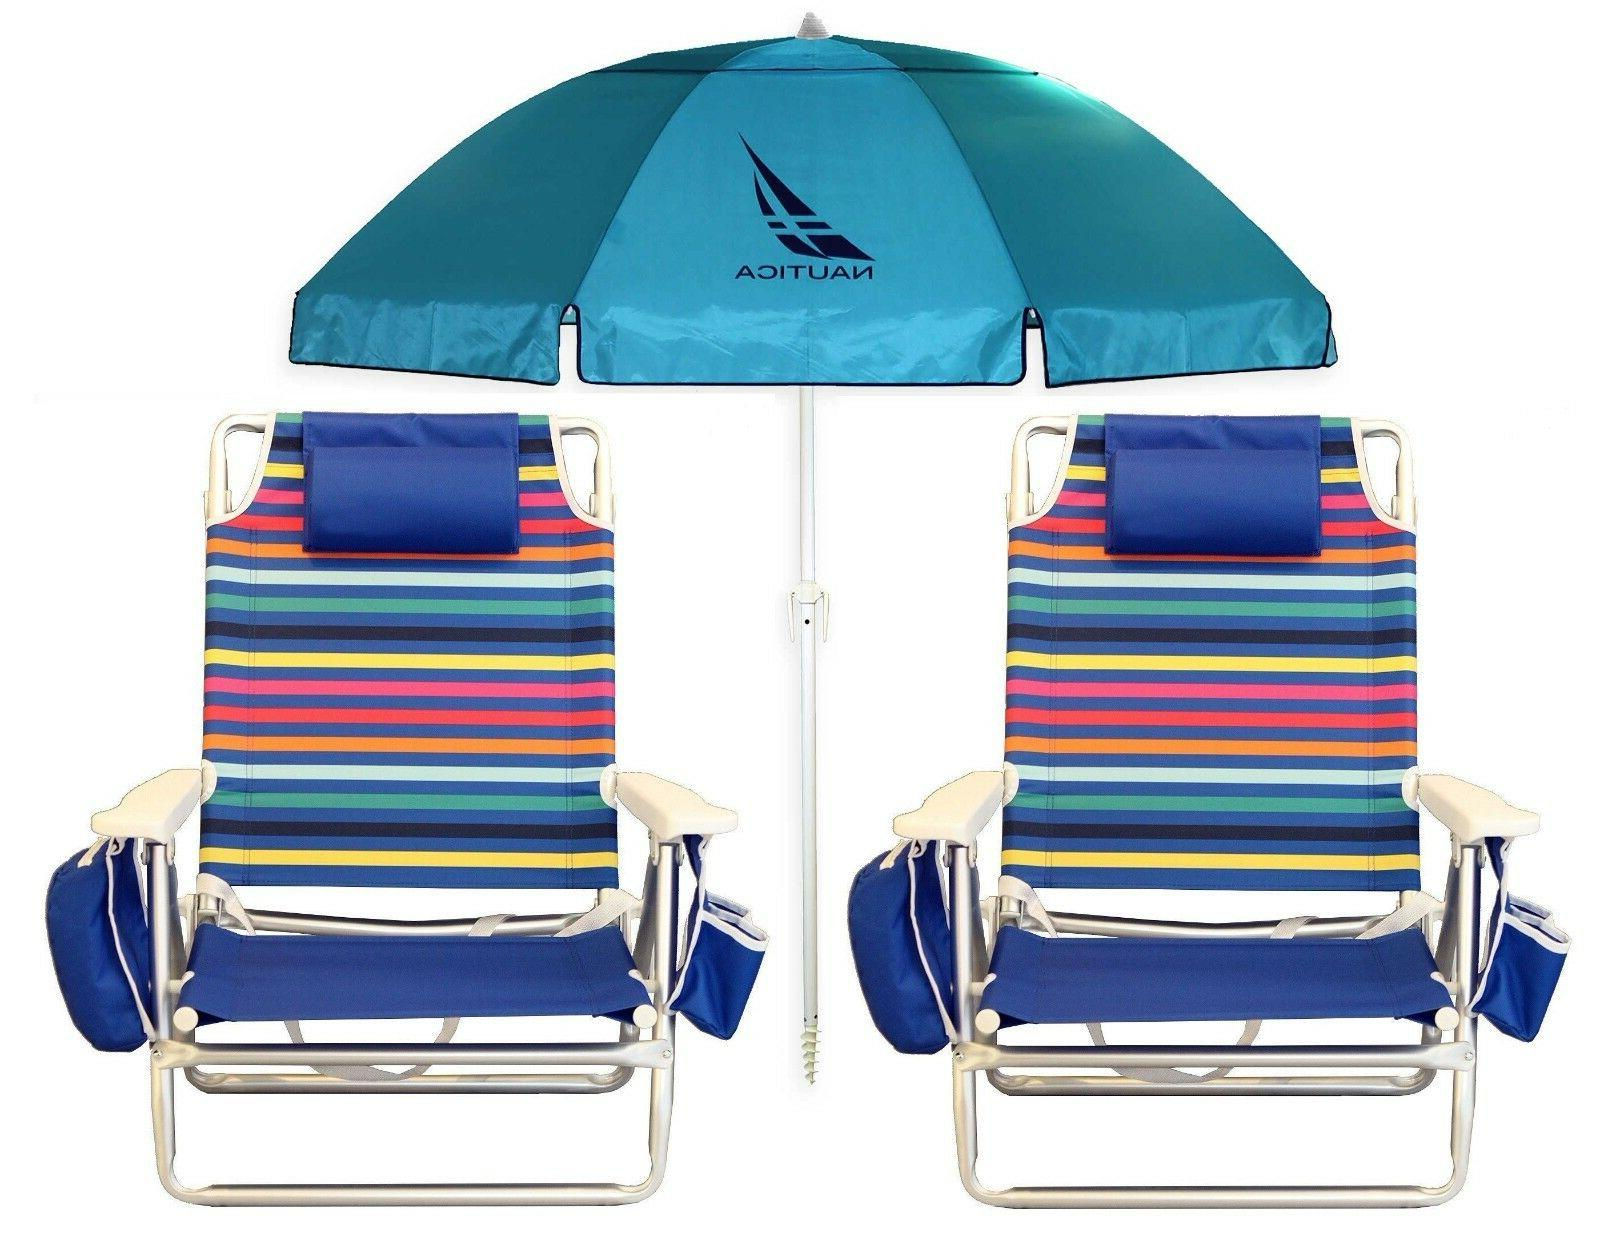 2 multi color beach chairs w cooler